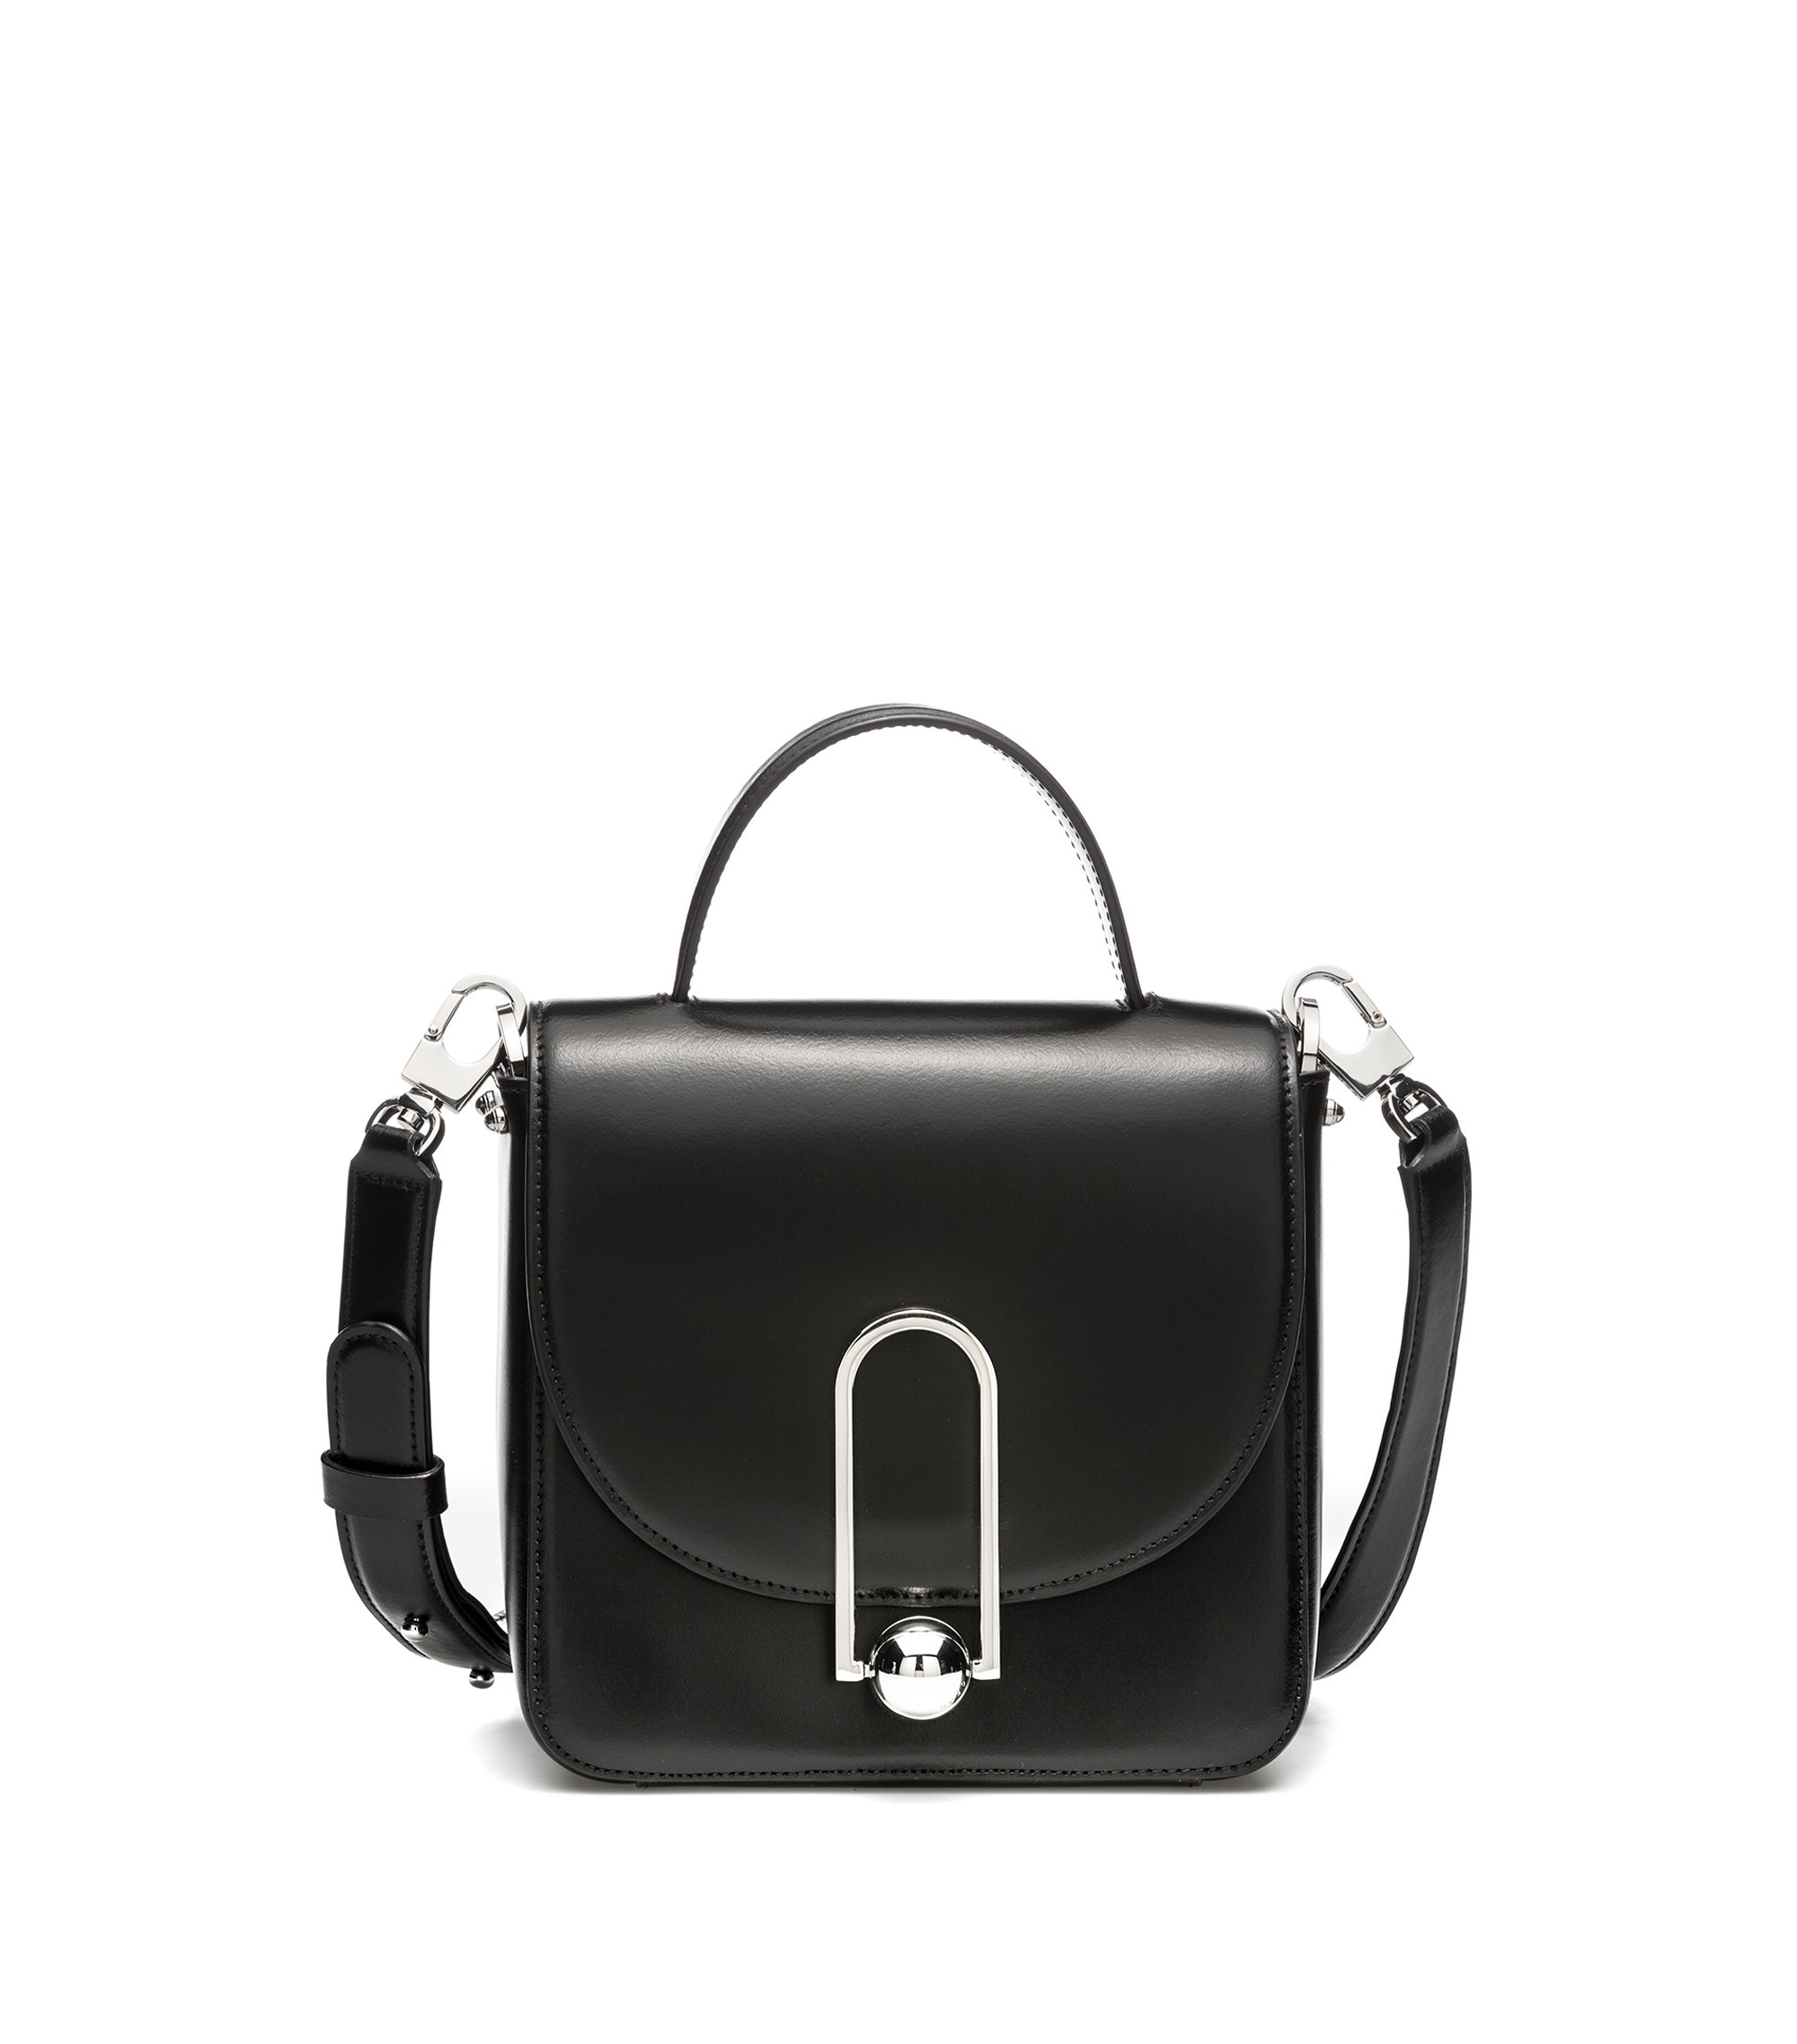 Leather bag with detachable strap and signature clasp, Black